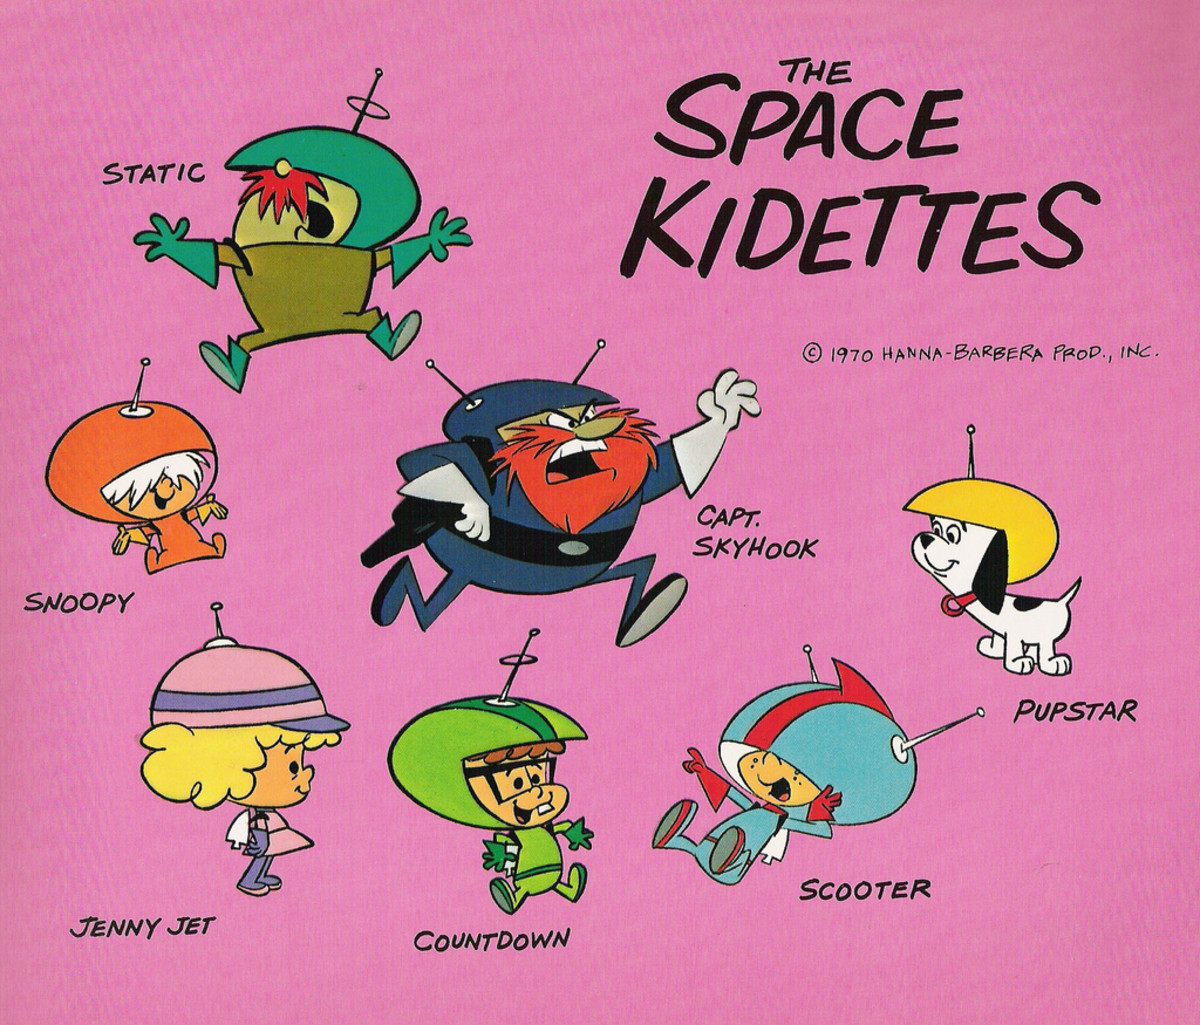 history-of-hanna-barbera-the-space-kidettes-and-young-samson